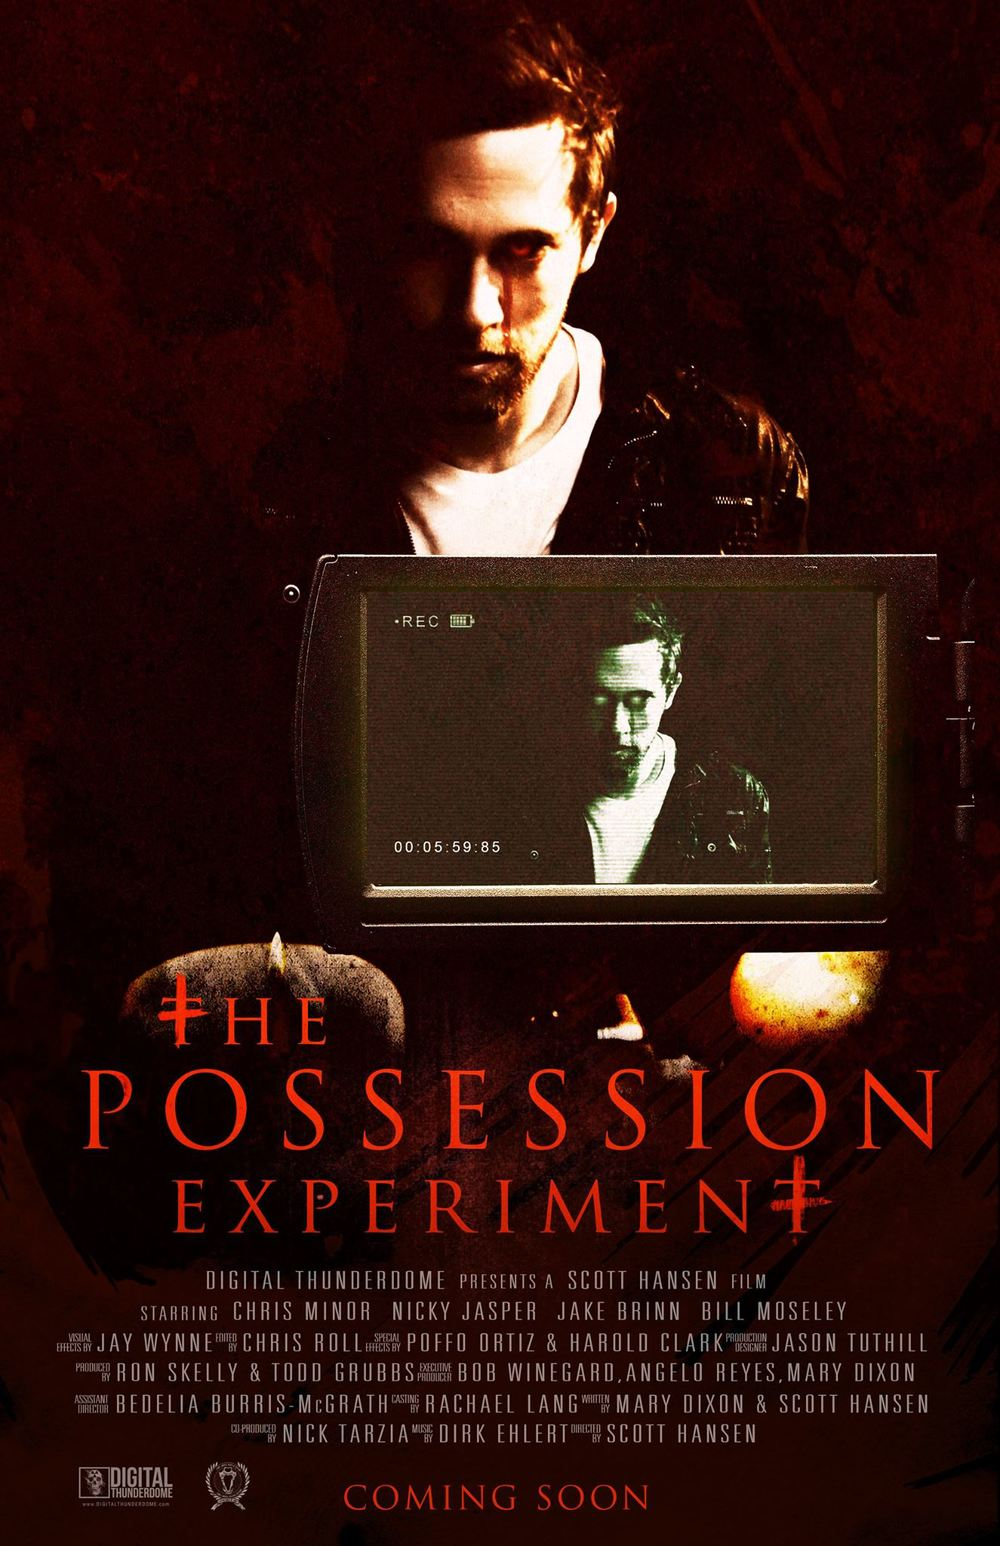 The Possession Experiment - Post Production